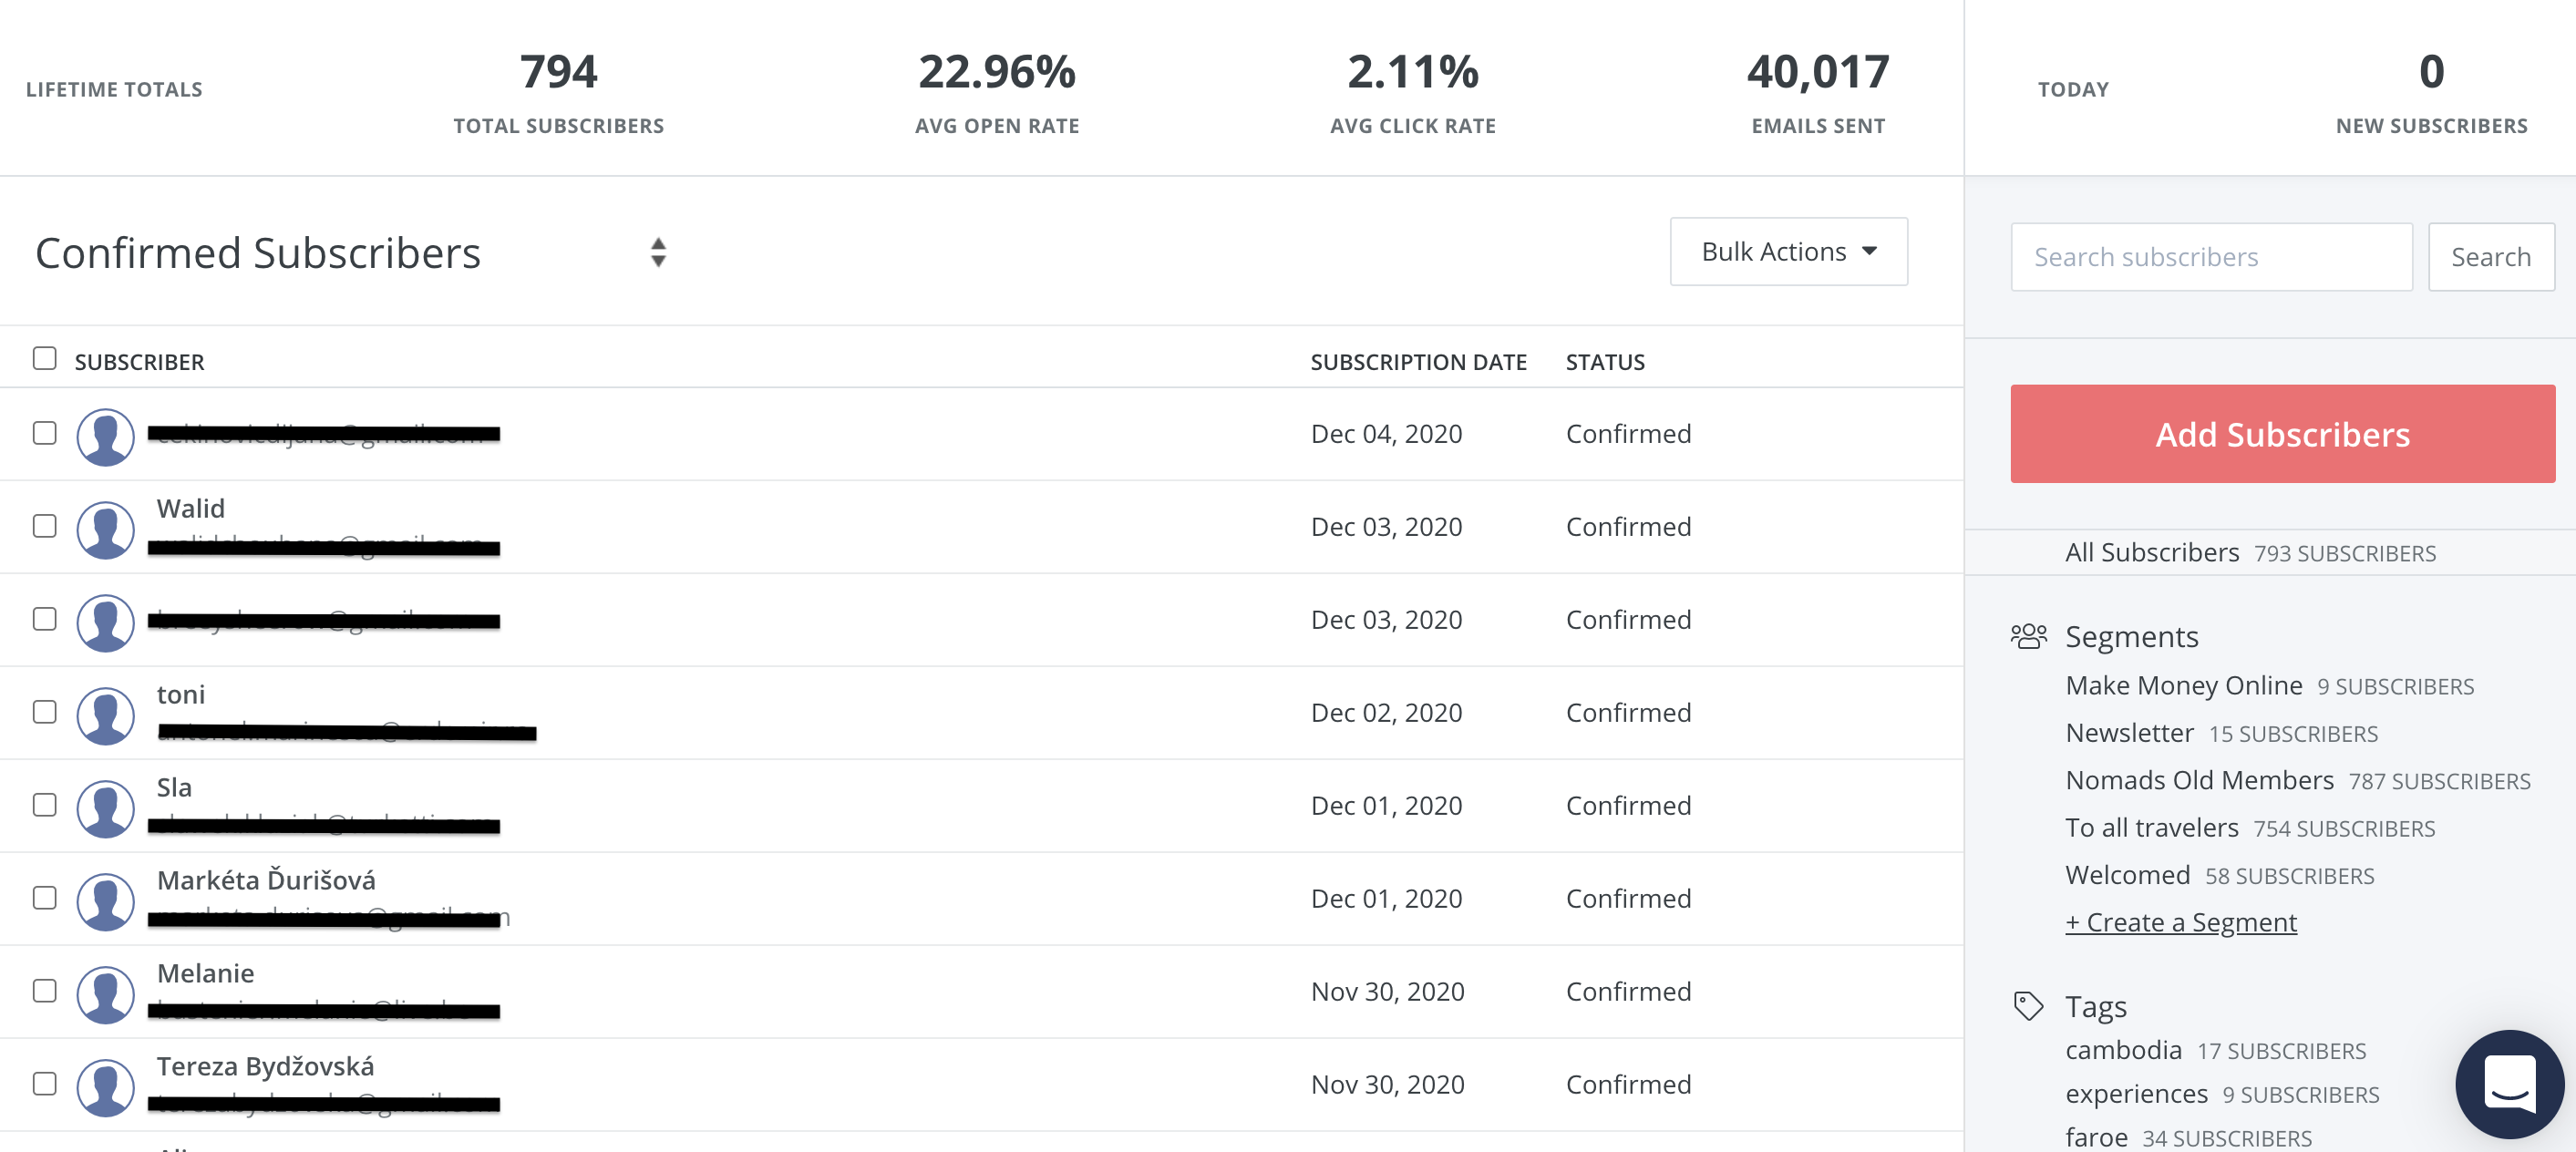 Subscribers analytics in Convertkit